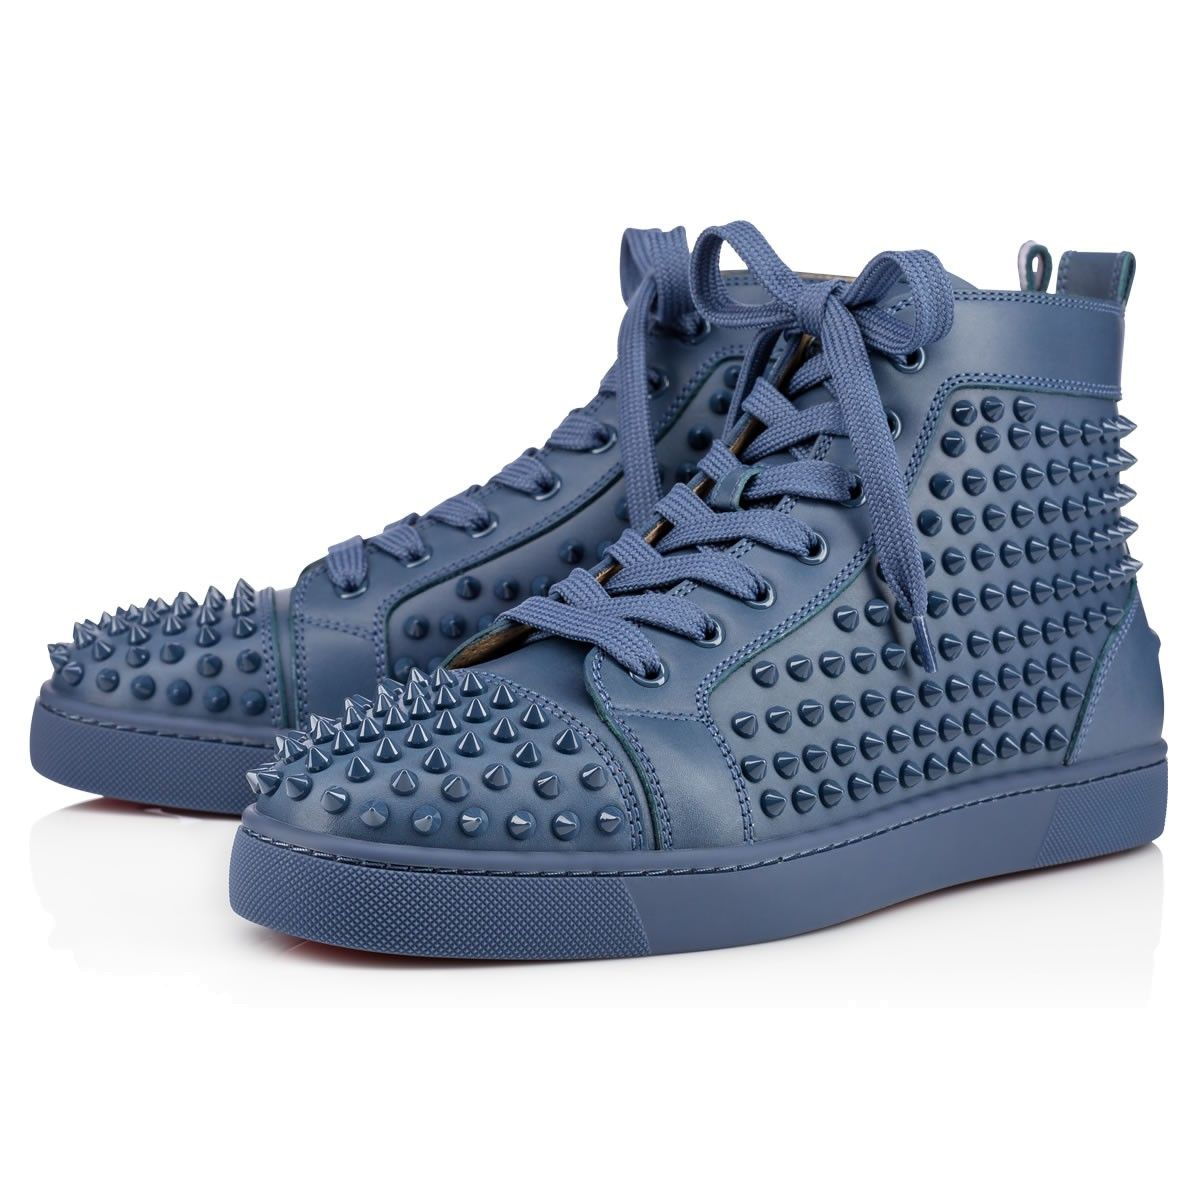 ab0e8eab0cf CHRISTIAN LOUBOUTIN Louis Calf/Spikes Blues Calfskin - Men Shoes ...